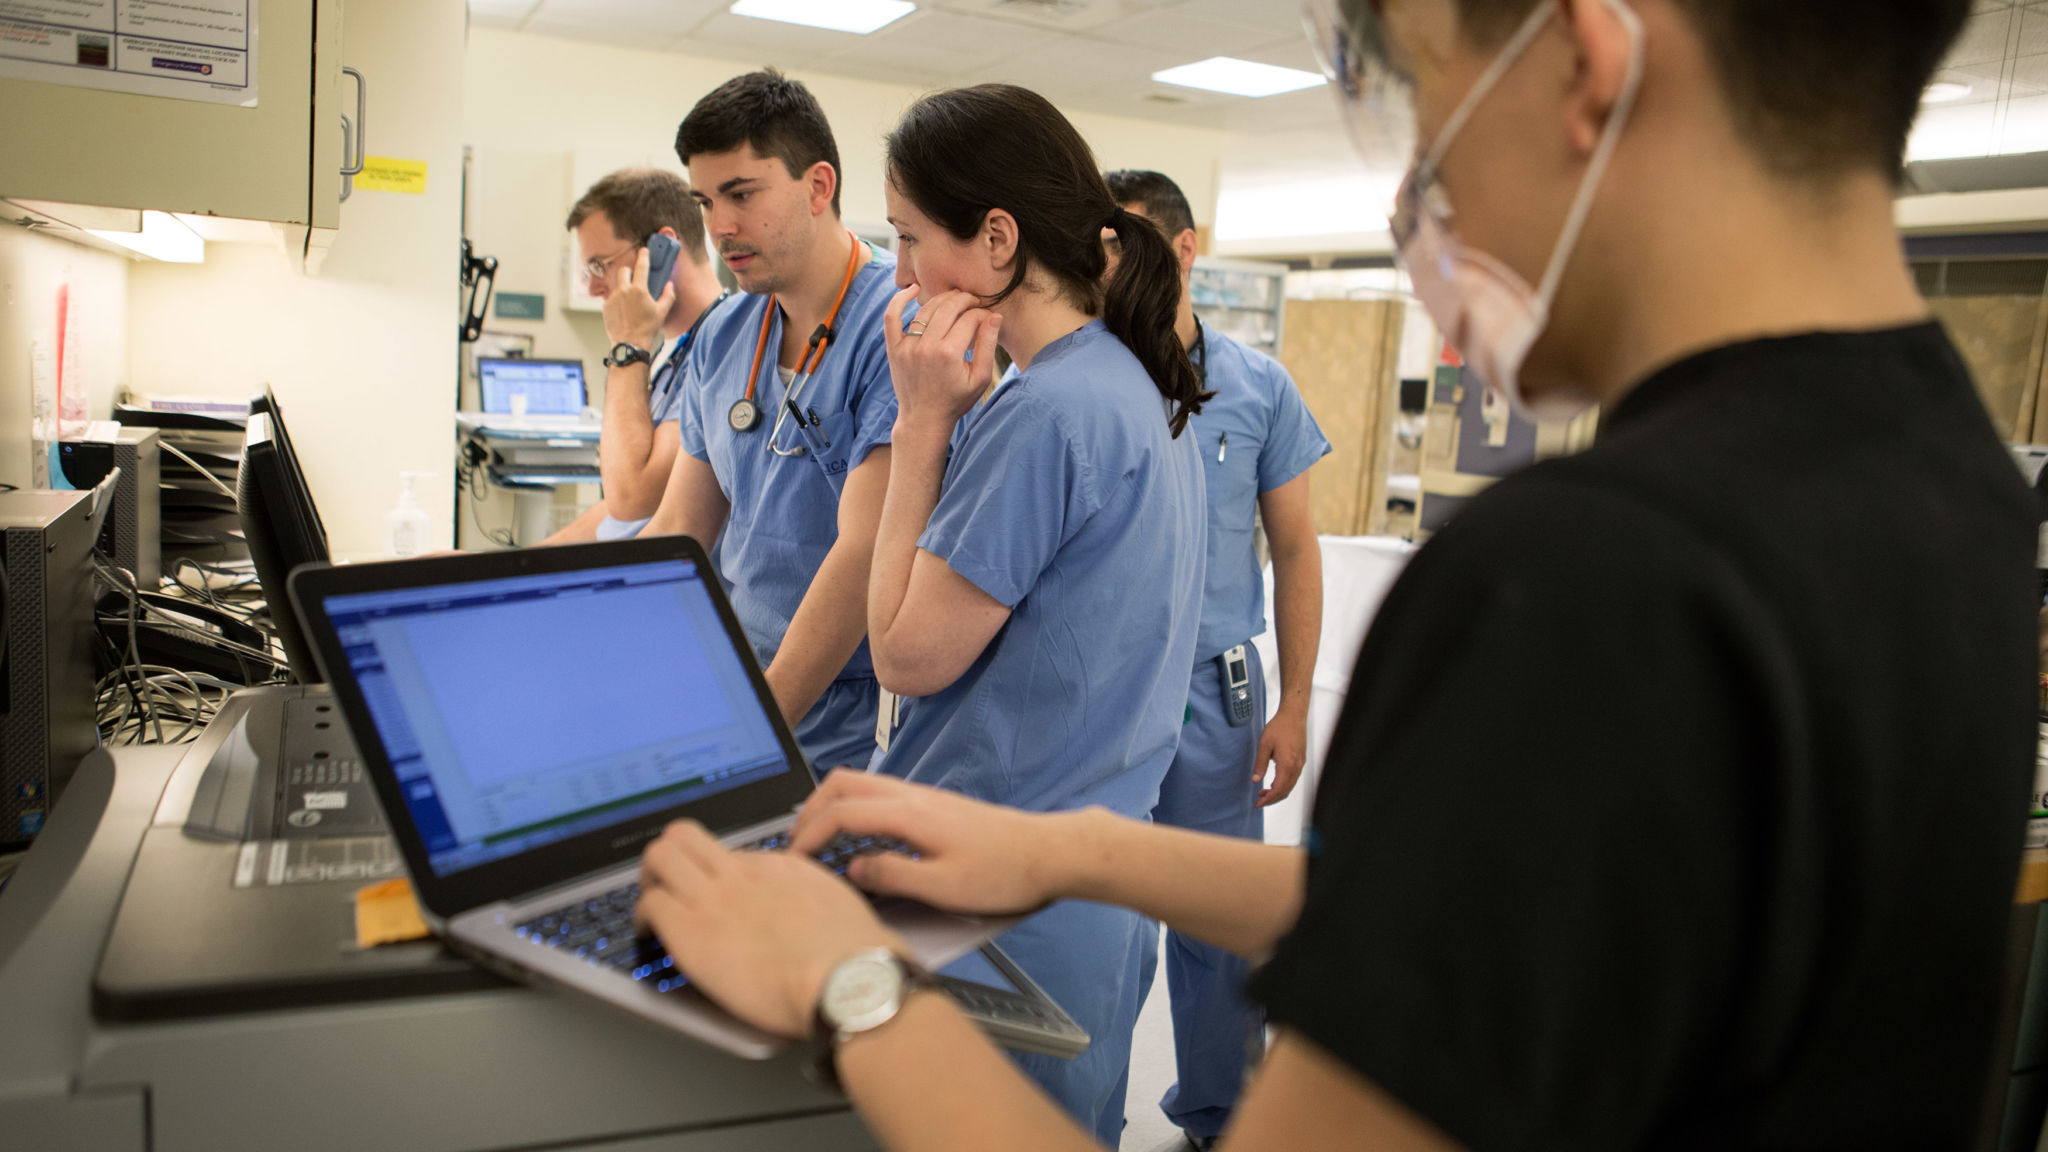 Scribe Warren Lam (right) works on notes, as attending physician Dr. Laura Burke (center) and Dr. Daniel Willner discuss a patient case, at Beth Israel Deaconess Medical Center Emergency Department on April 19, 2016, in Boston, Massachusetts. Kayana Szymczak for STAT